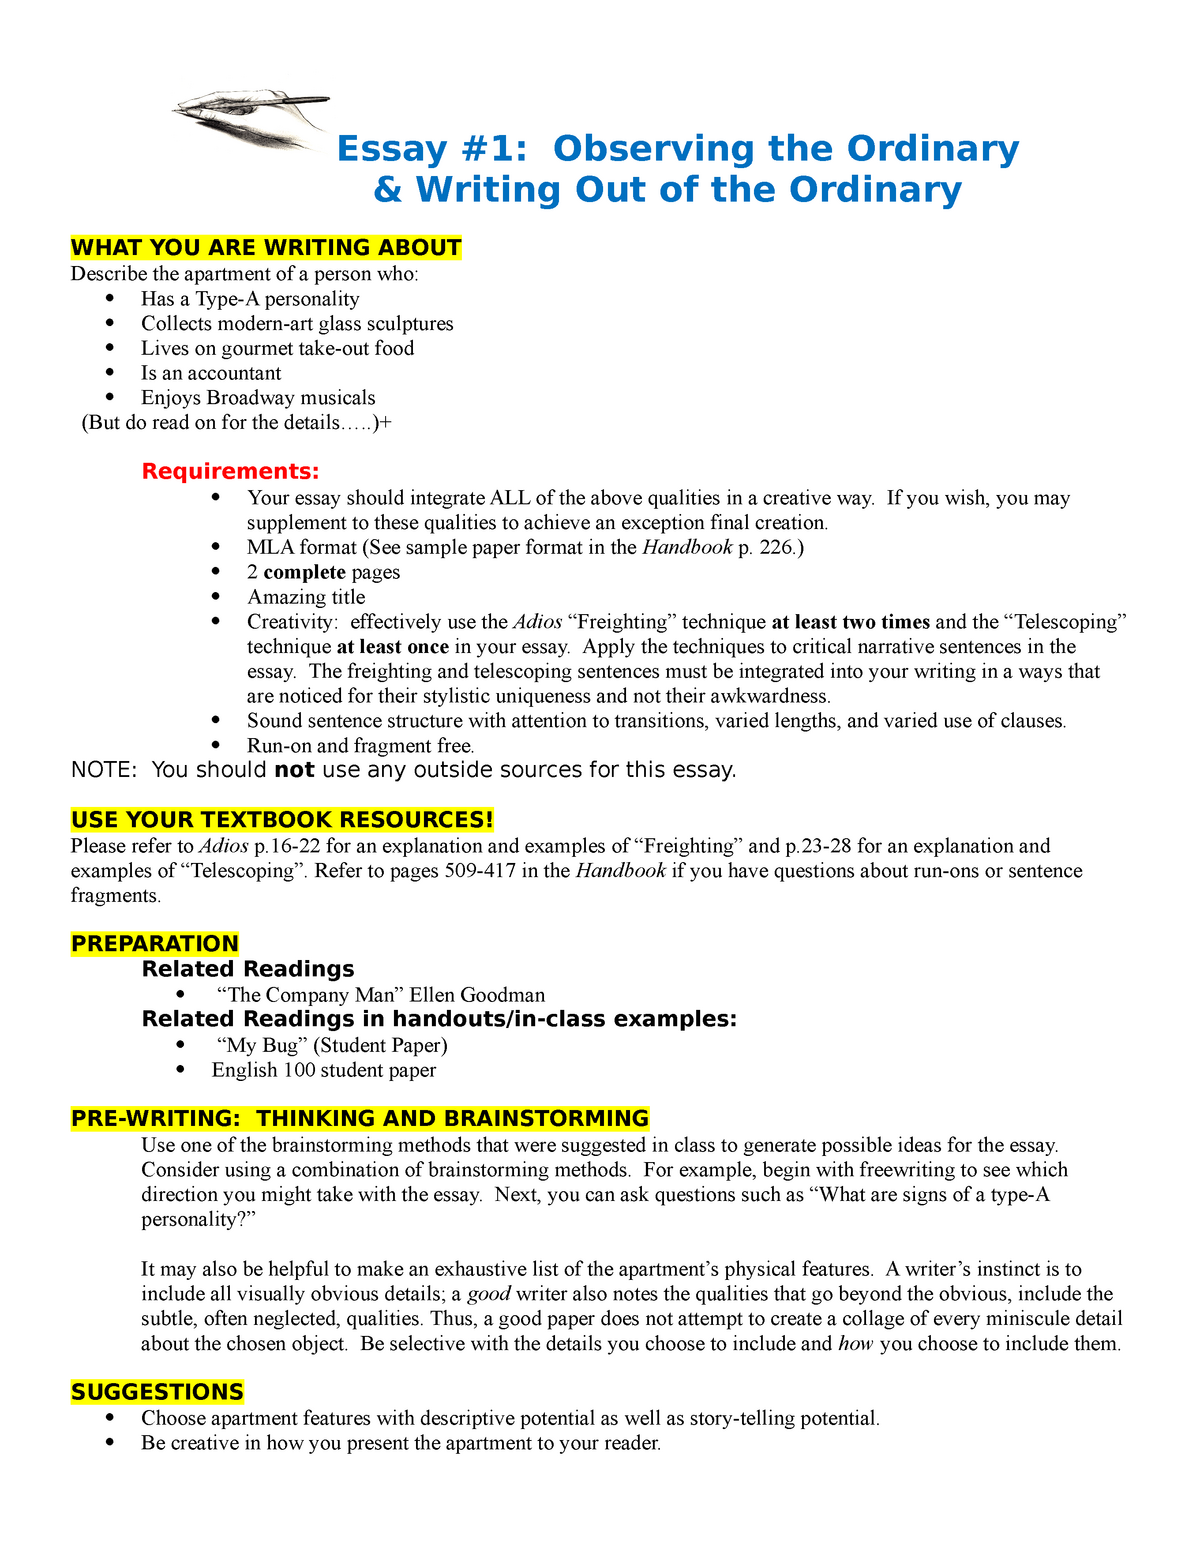 English Essay Outline Format  Essay On Business Management also Descriptive Essay English  Essay  Describe Apartment  Engl A  Occ  How To Write A Proposal Essay Outline